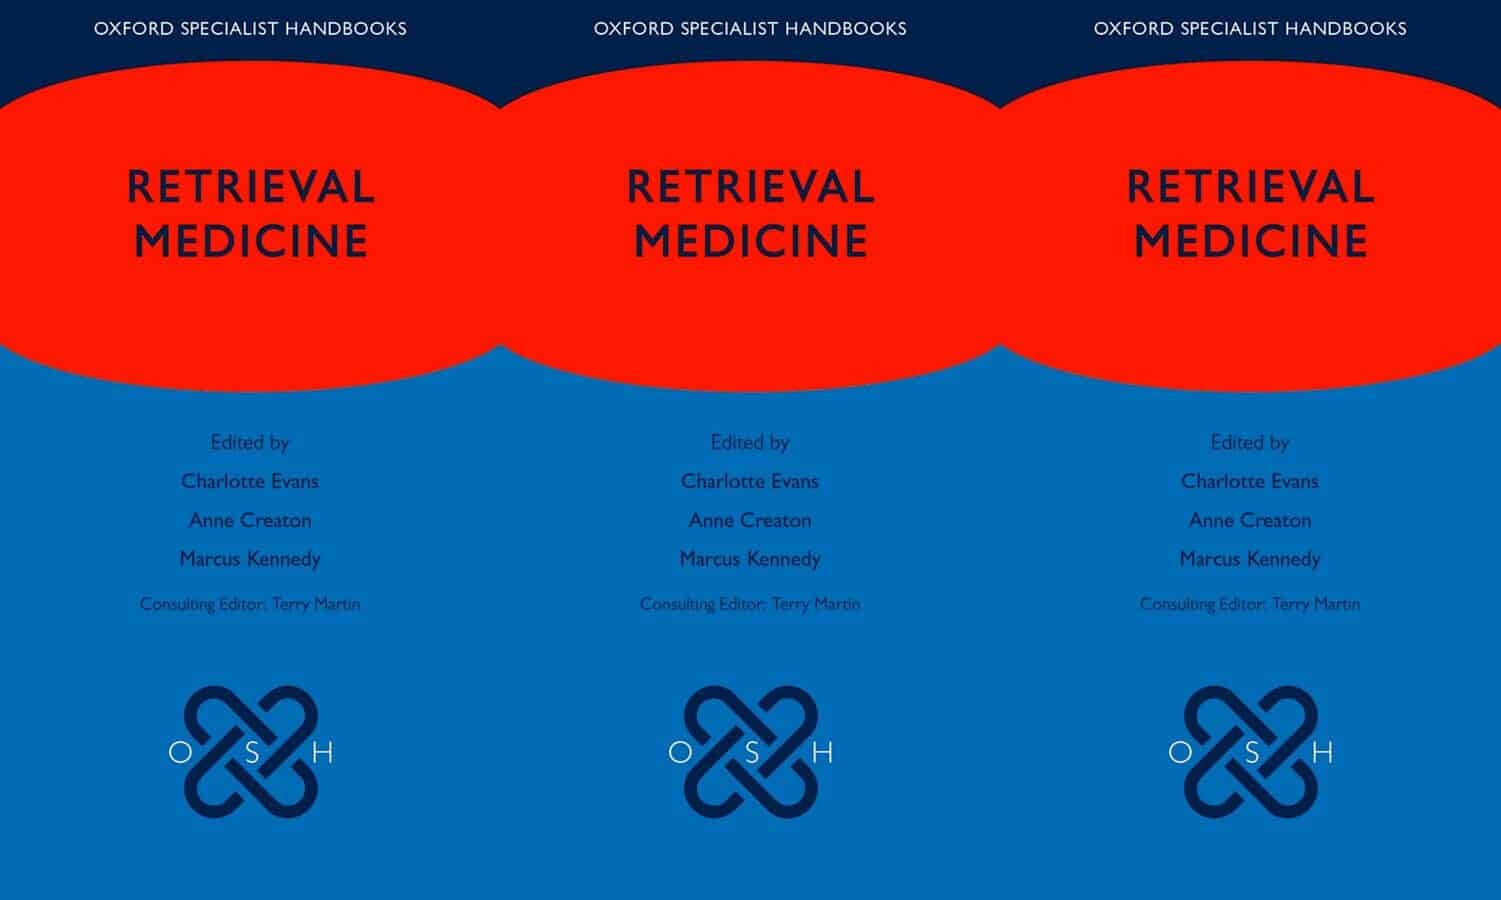 Retrieval Medicine